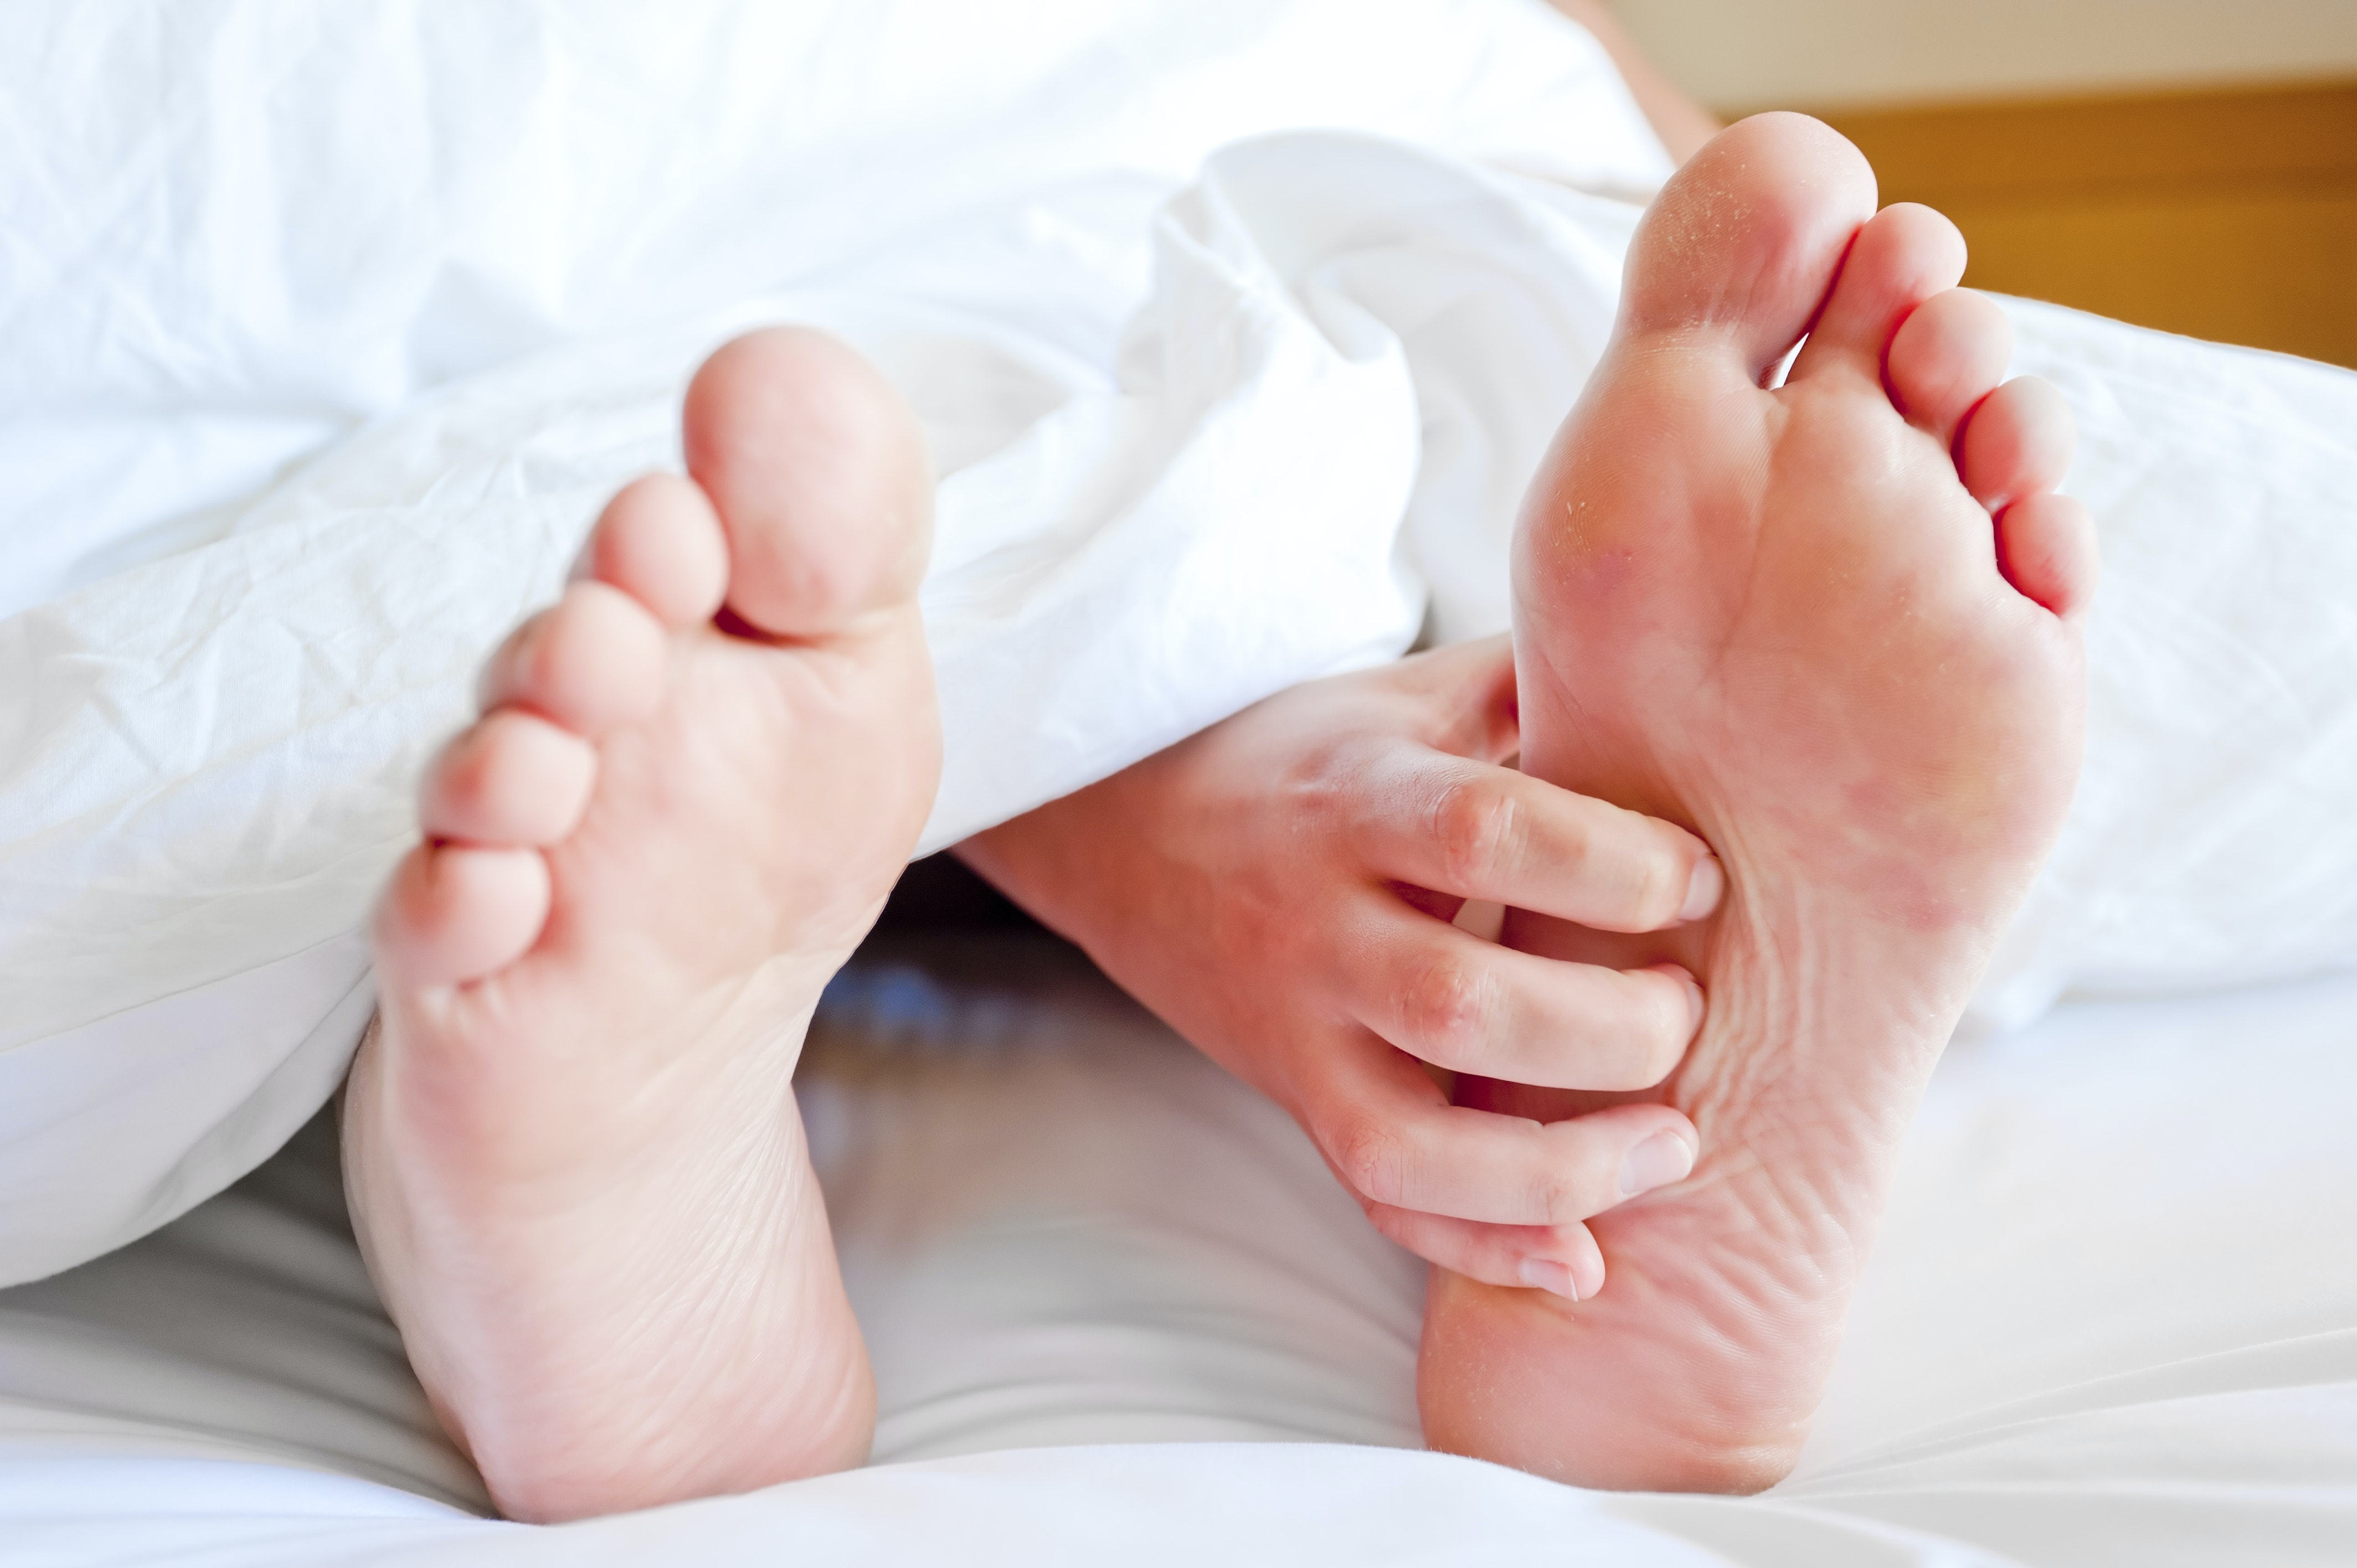 An image depicting a person suffering from pain in the sole of the foot that gets worse in the morning symptoms